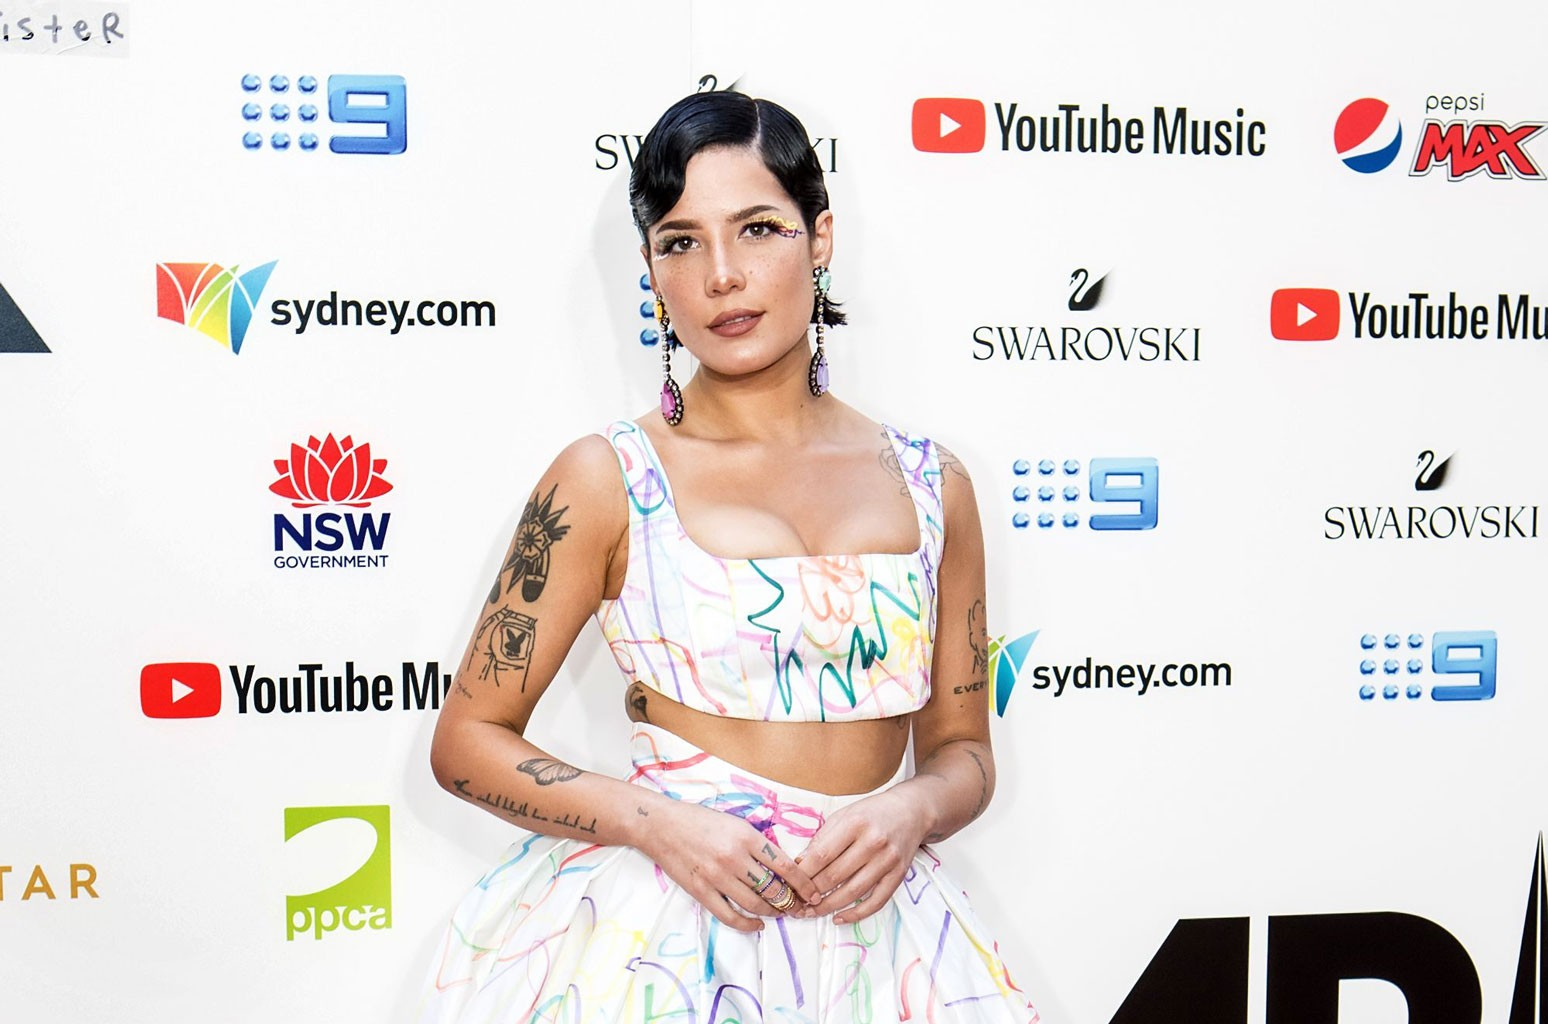 Halsey Explains Recent Change to Pronouns That Feel 'Most Authentic' For Her